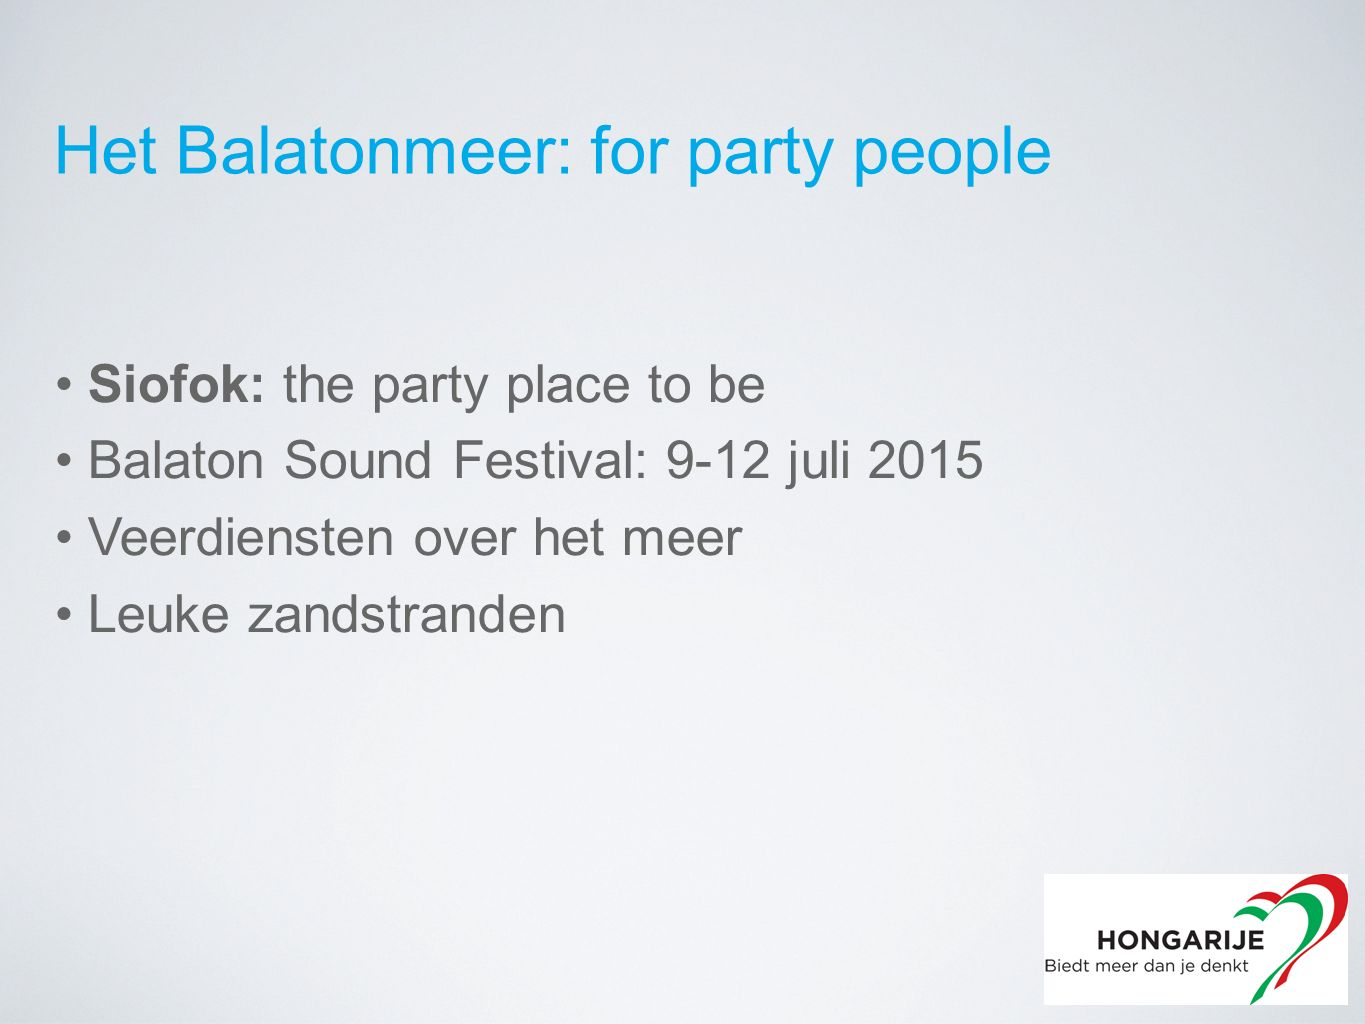 Siofok: the party place to be Balaton Sound Festival: 9-12 juli 2015 Veerdiensten over het meer Leuke zandstranden Het Balatonmeer: for party people